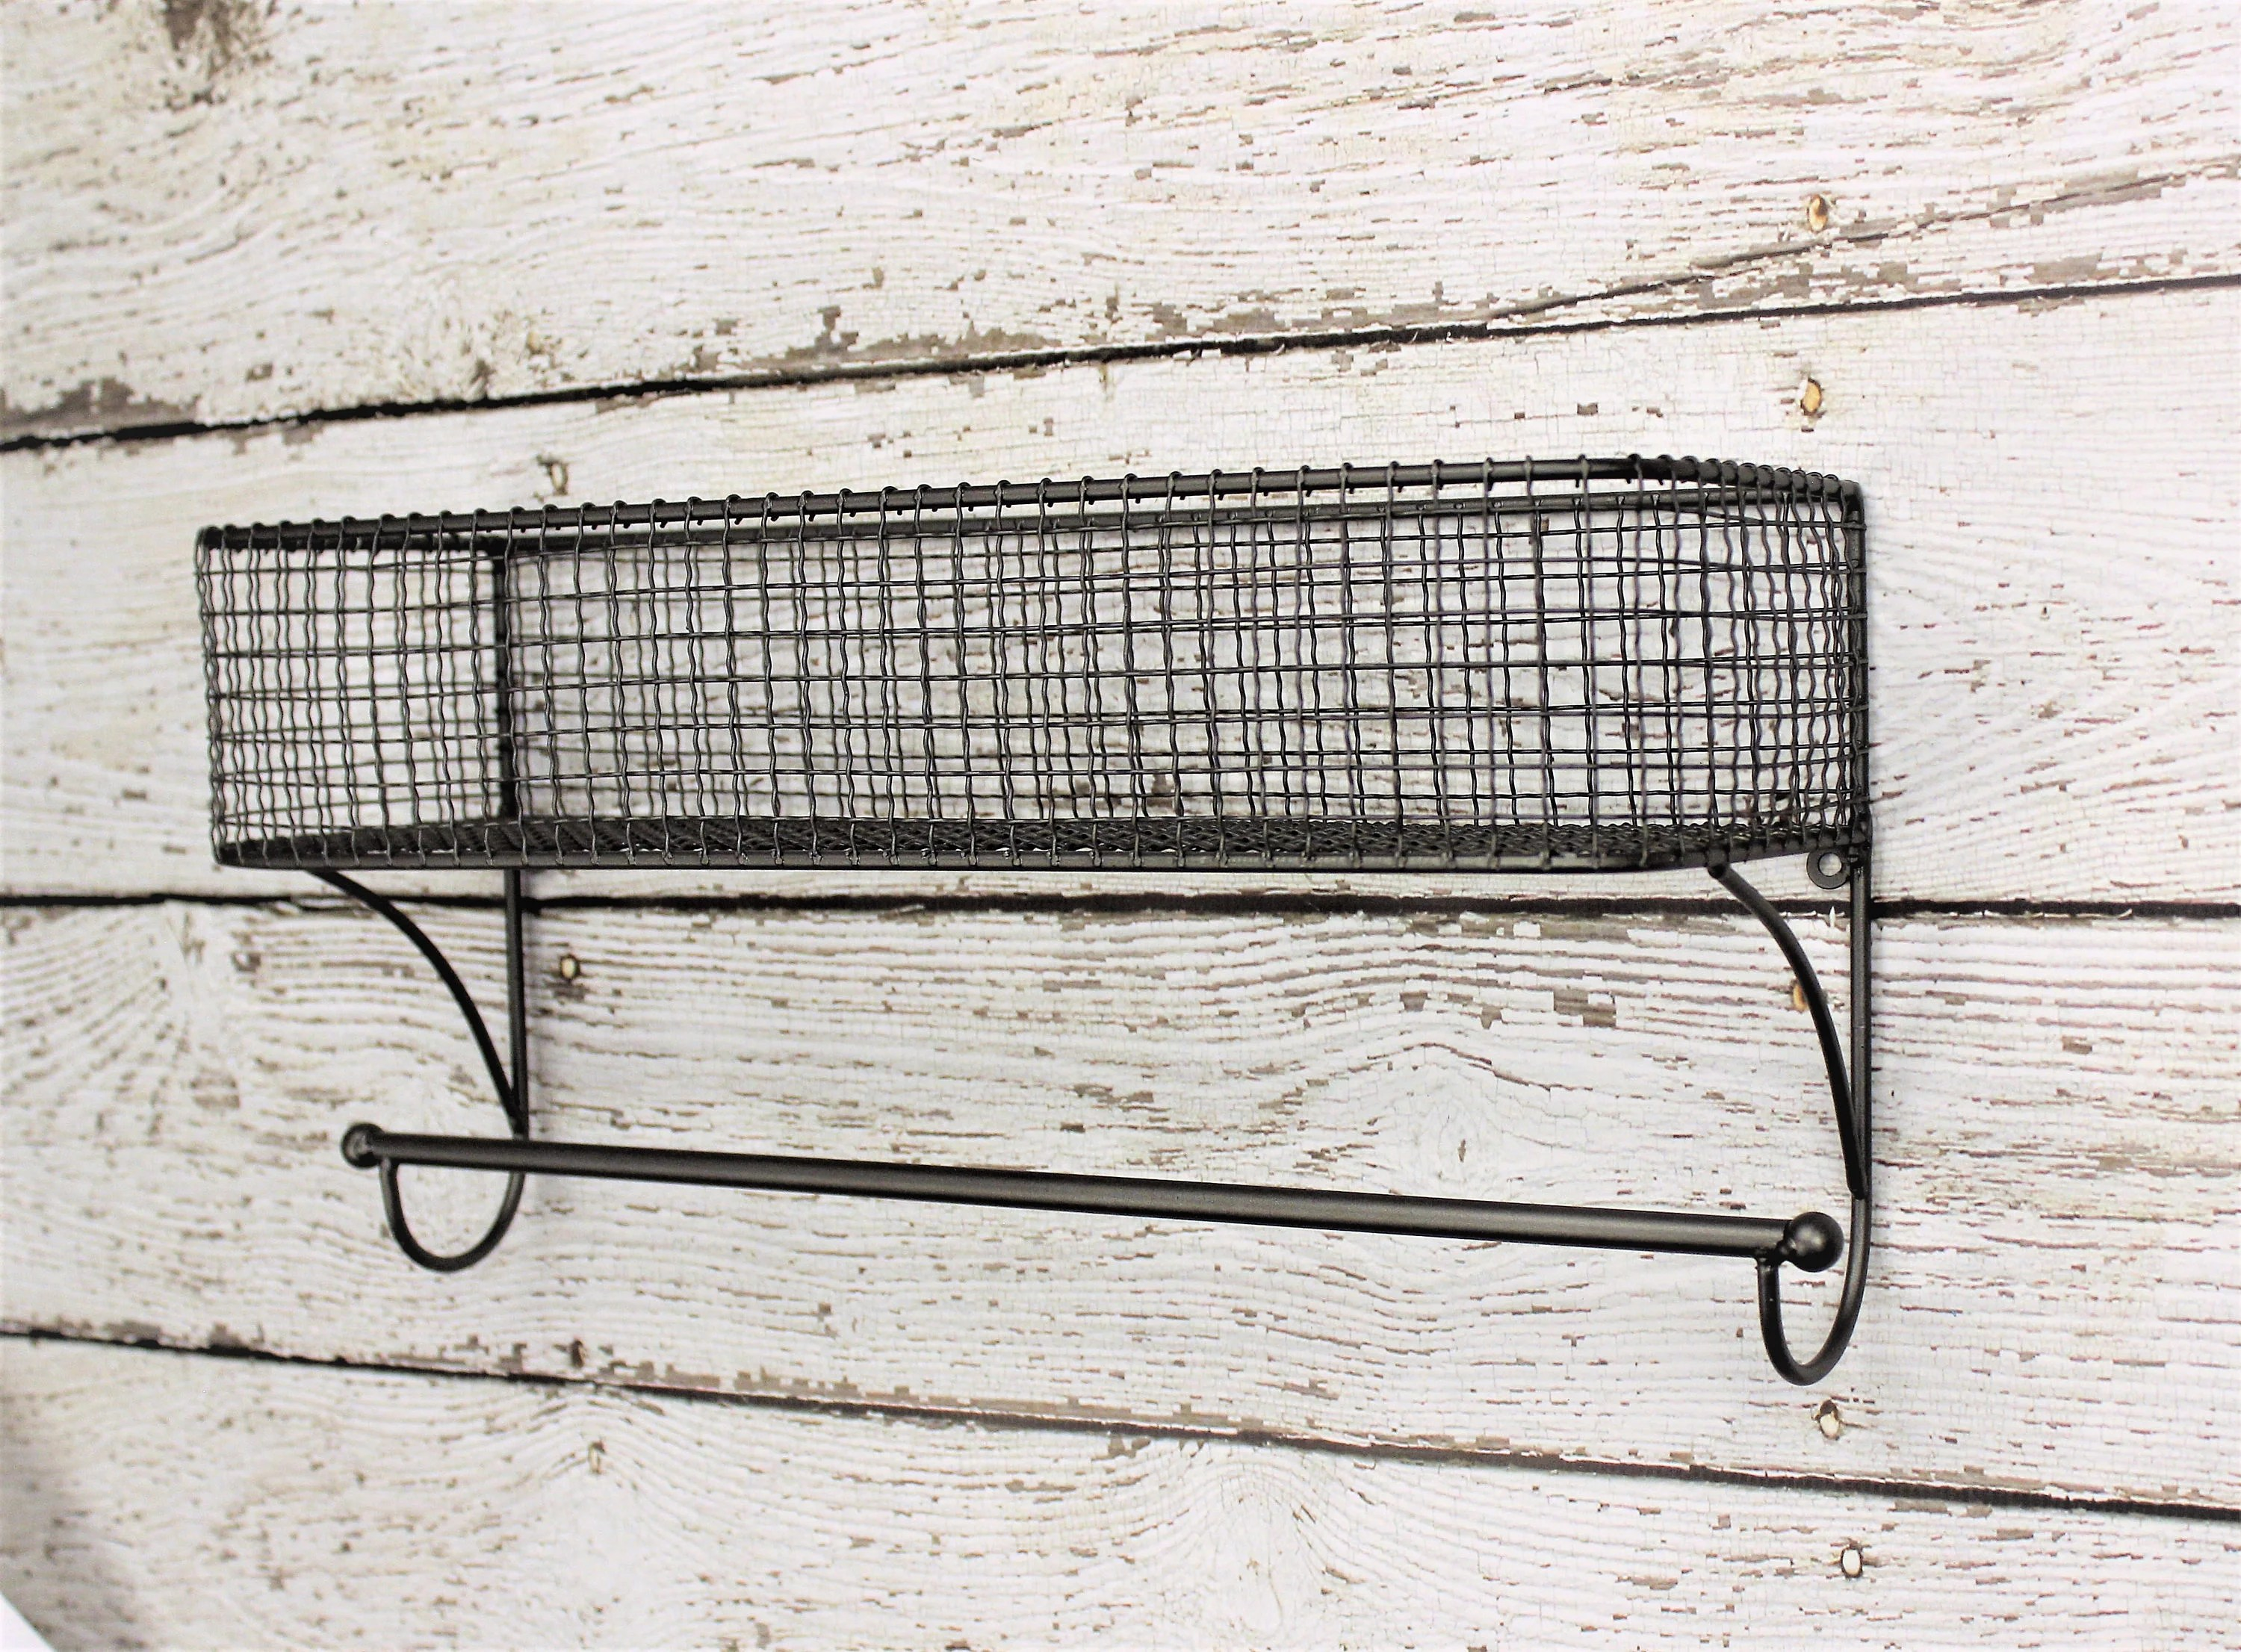 Farmhouse Hand Towel Holder Bathroom Organizer Basket Towel Rod Bathroom Shelf Bathroom